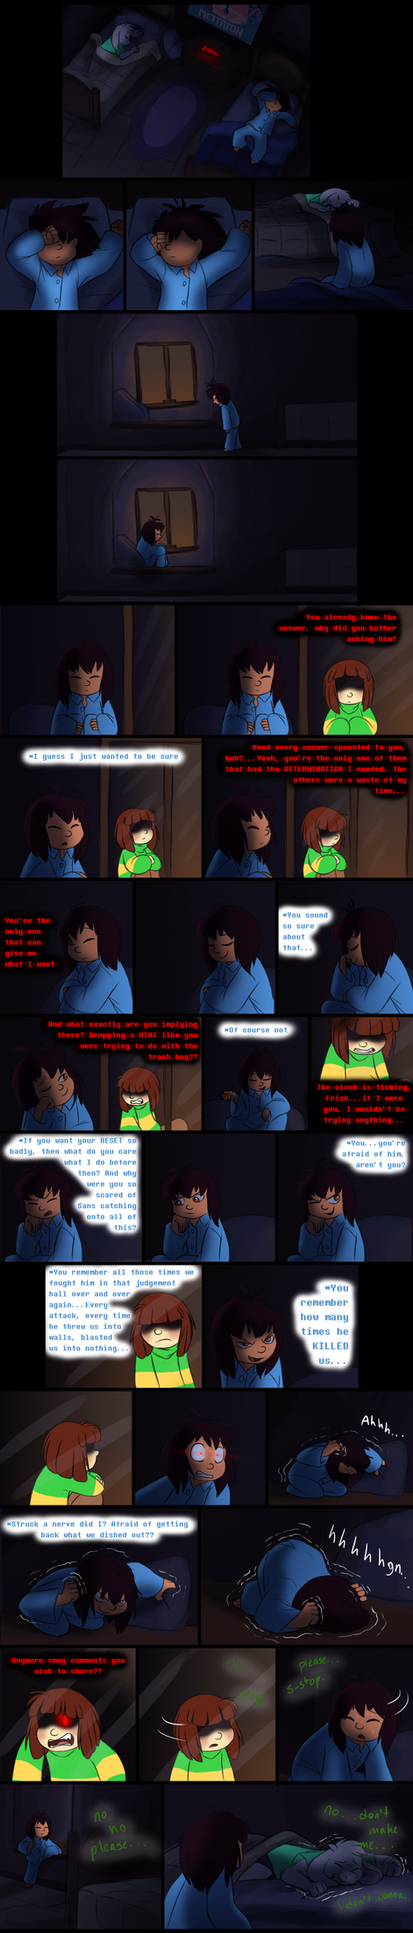 Endertale - Page 15 by TC-96